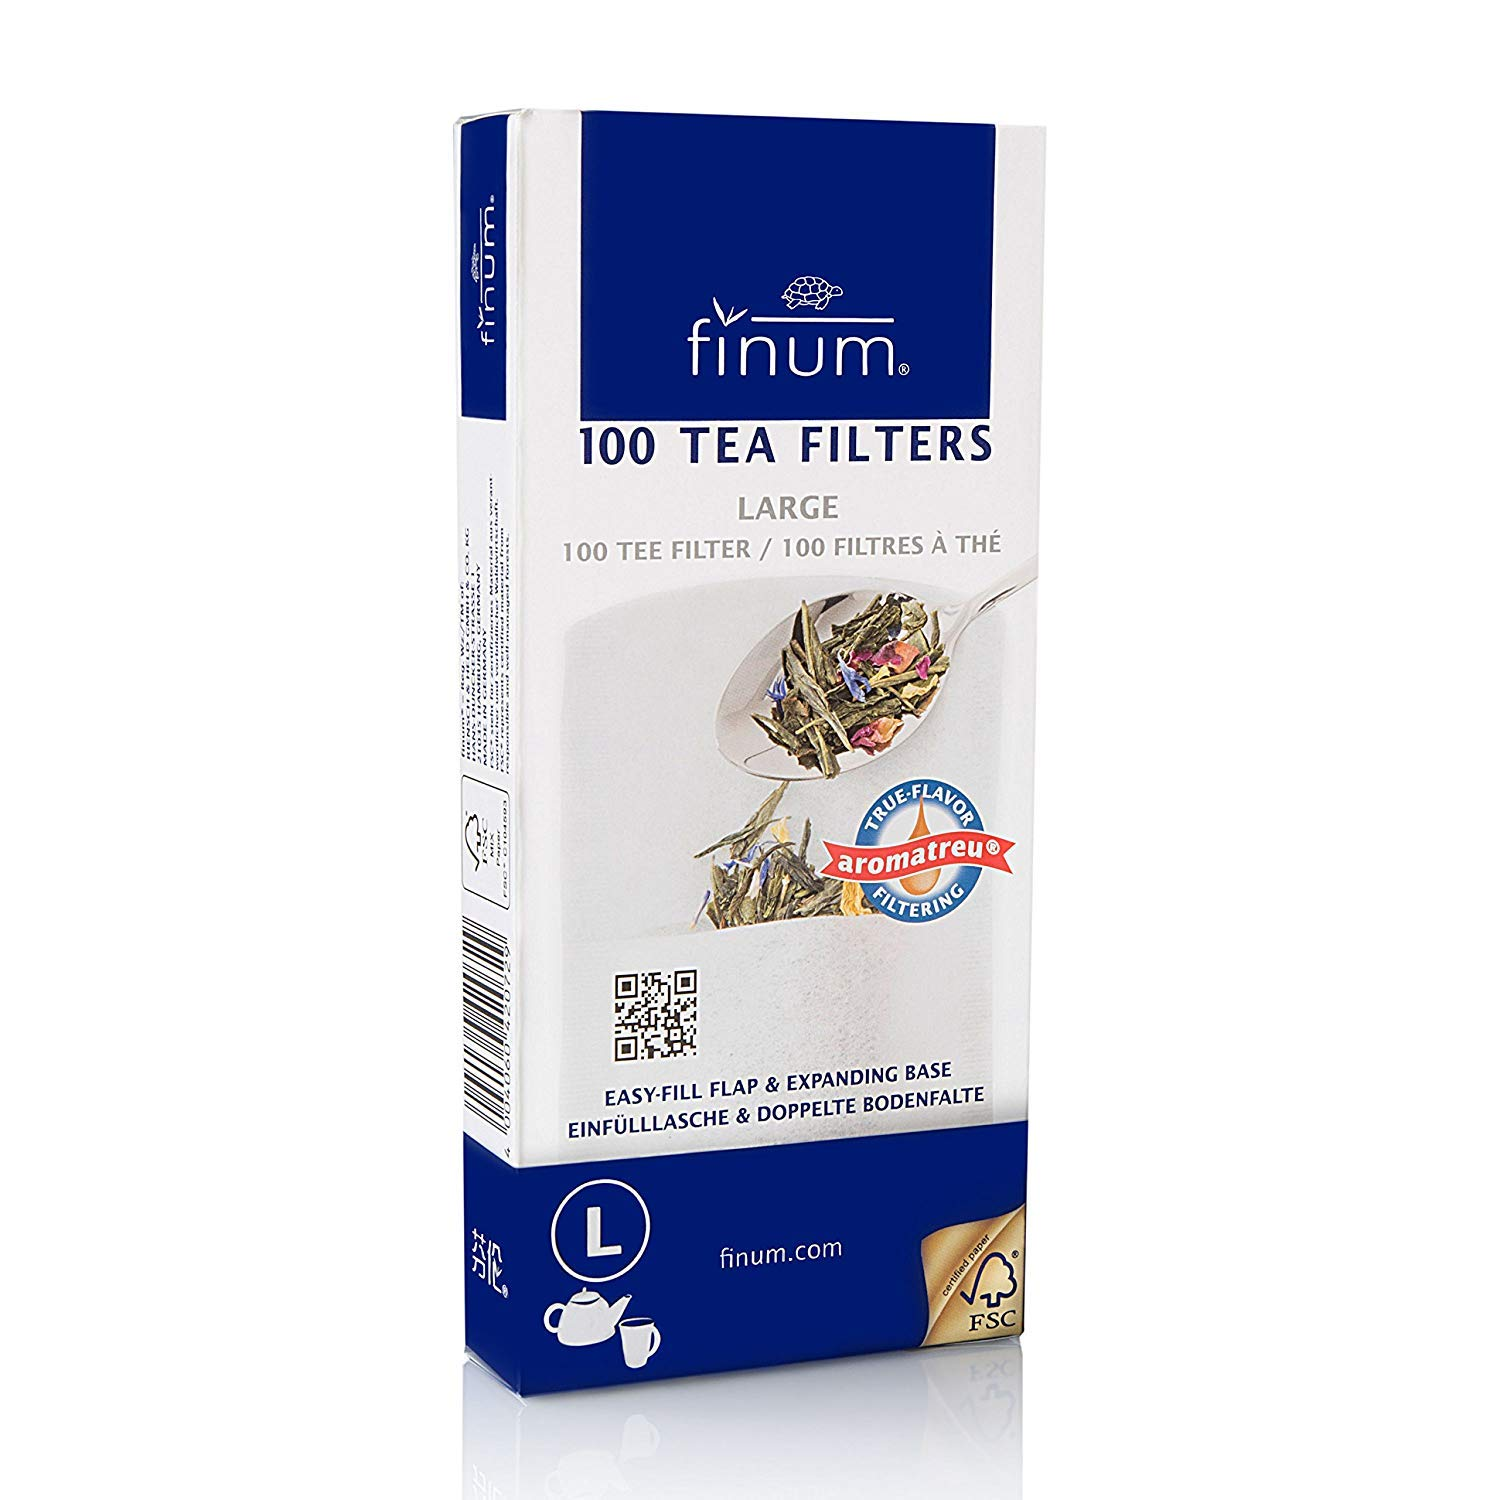 Finum Disposable Paper Tea Filter Bags for Loose Tea, White, Large, 100 Count (Pack of 24) by finum